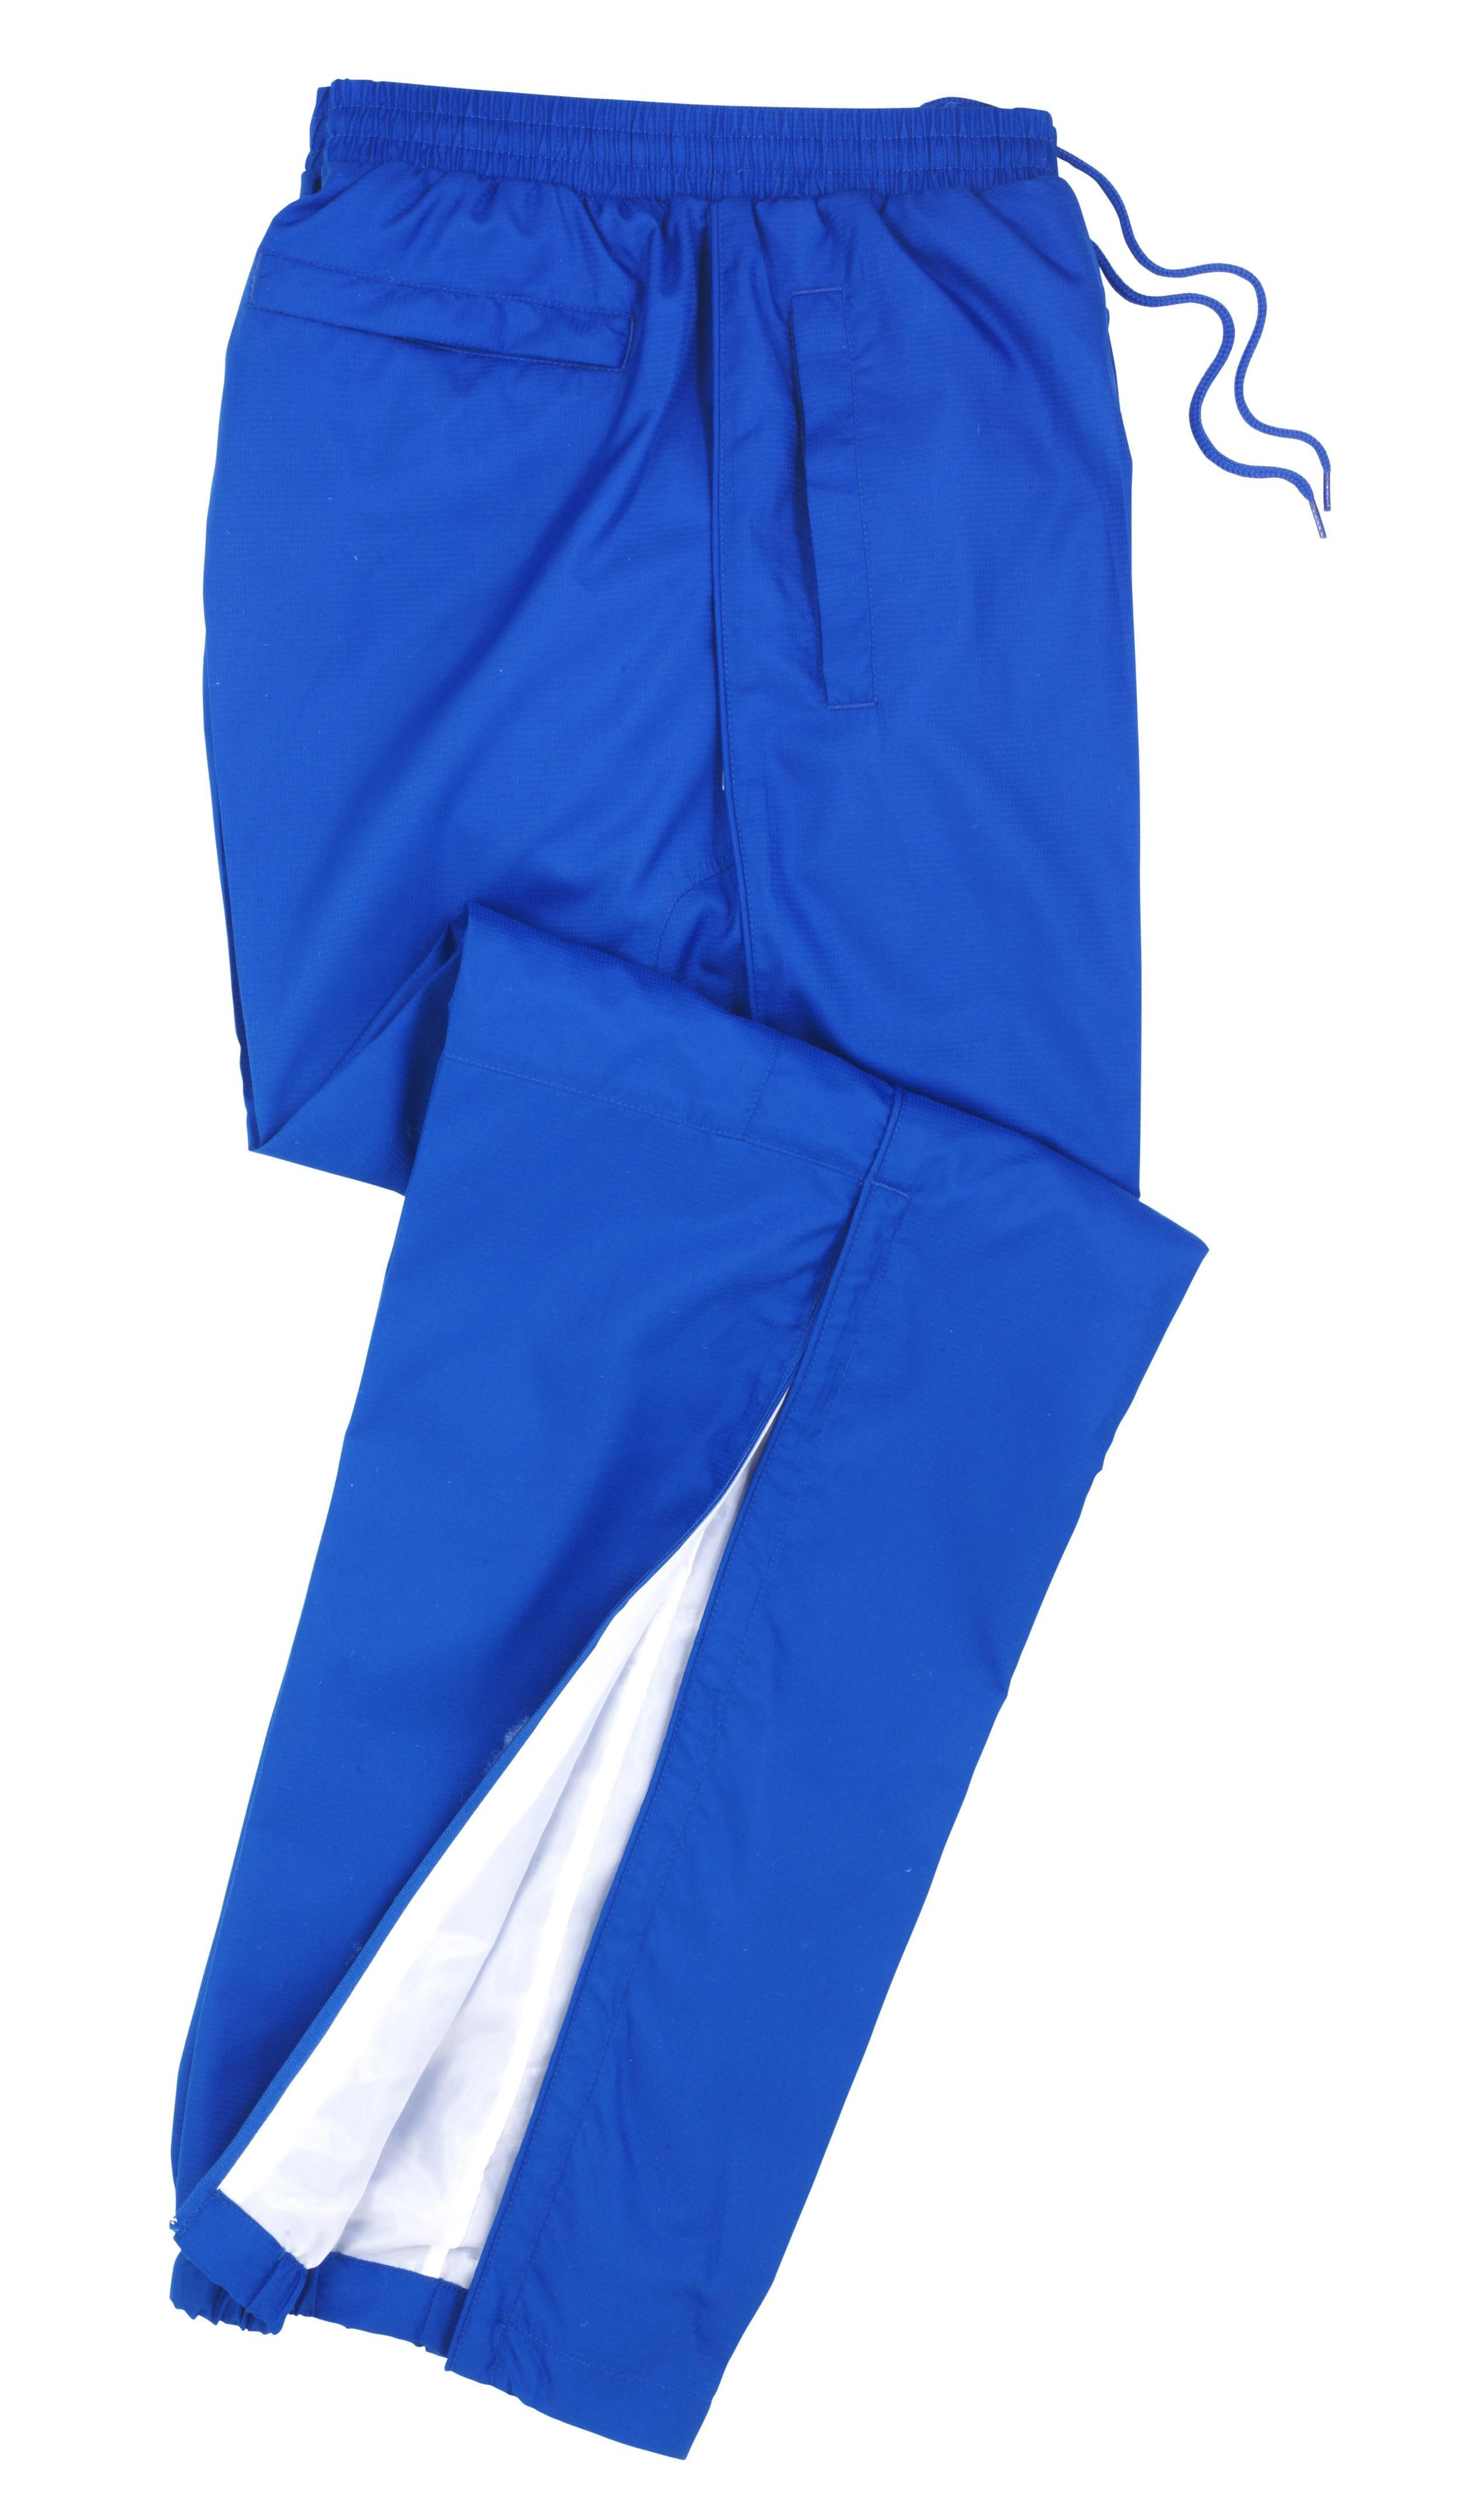 Flash Unisex Track Bottoms - Royal Blue Only